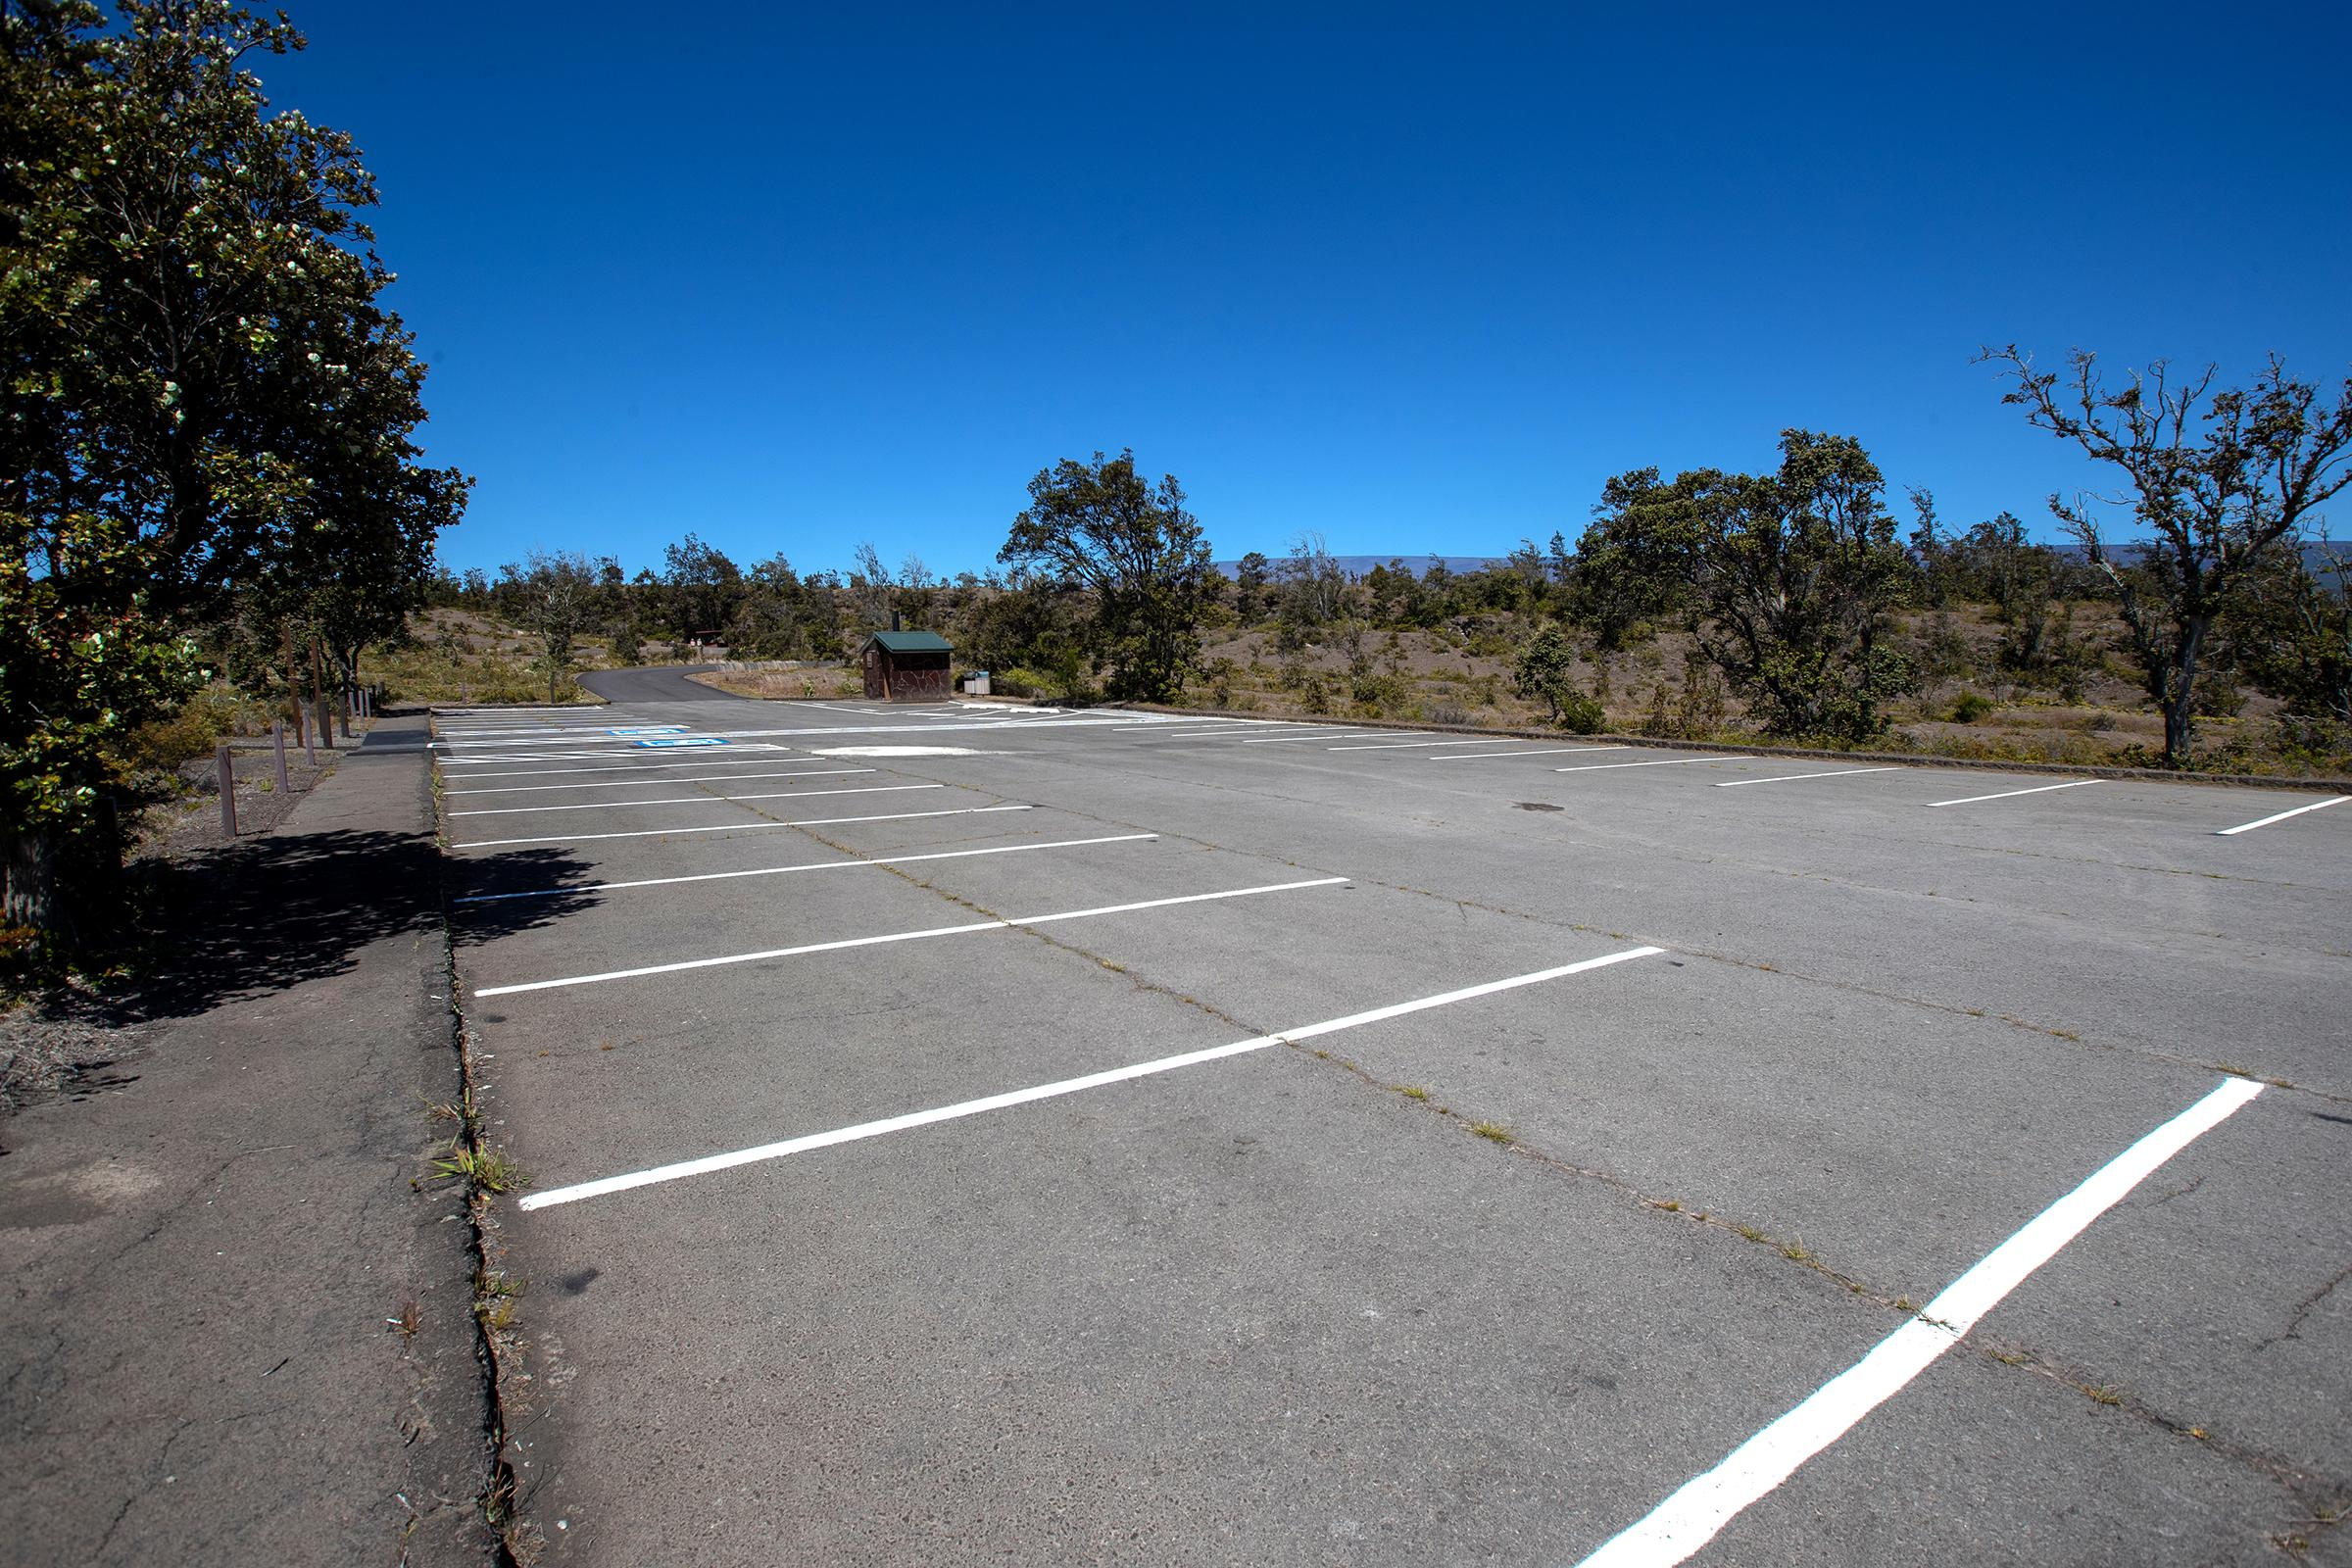 An empty parking lot with trees on  the periphery